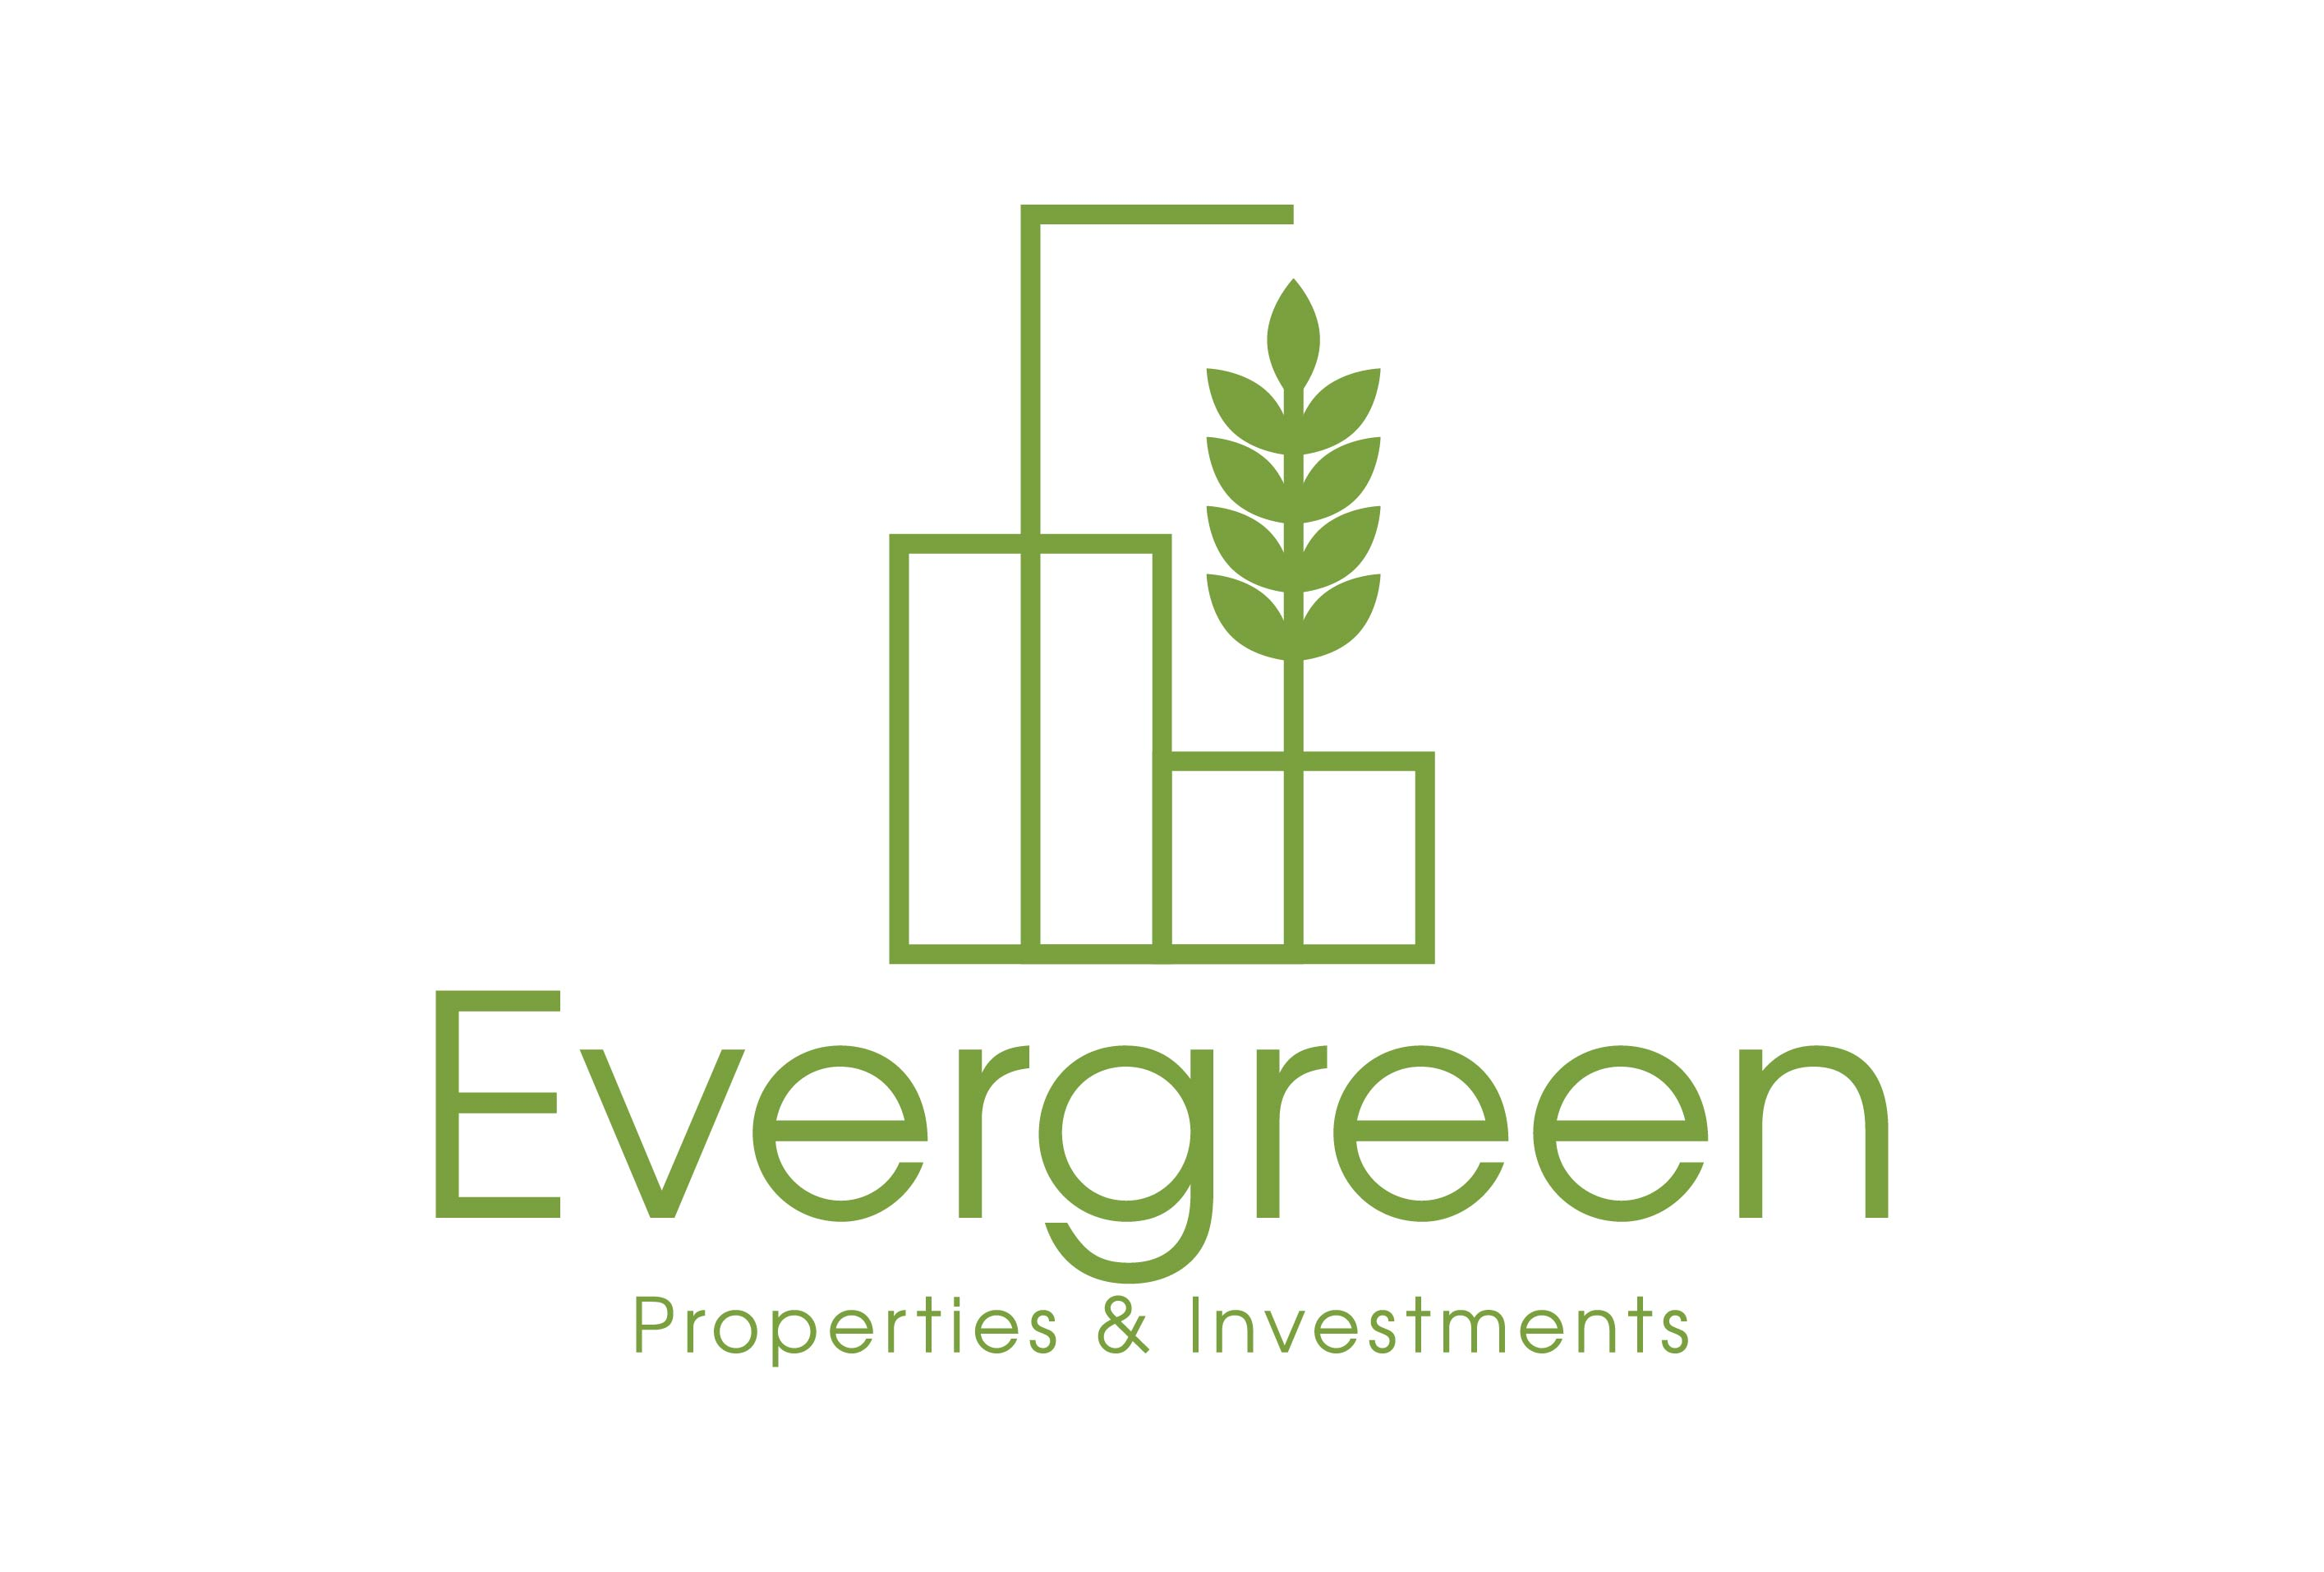 Dan Barcelon Real Estate - Evergreen Properties and Investments logo